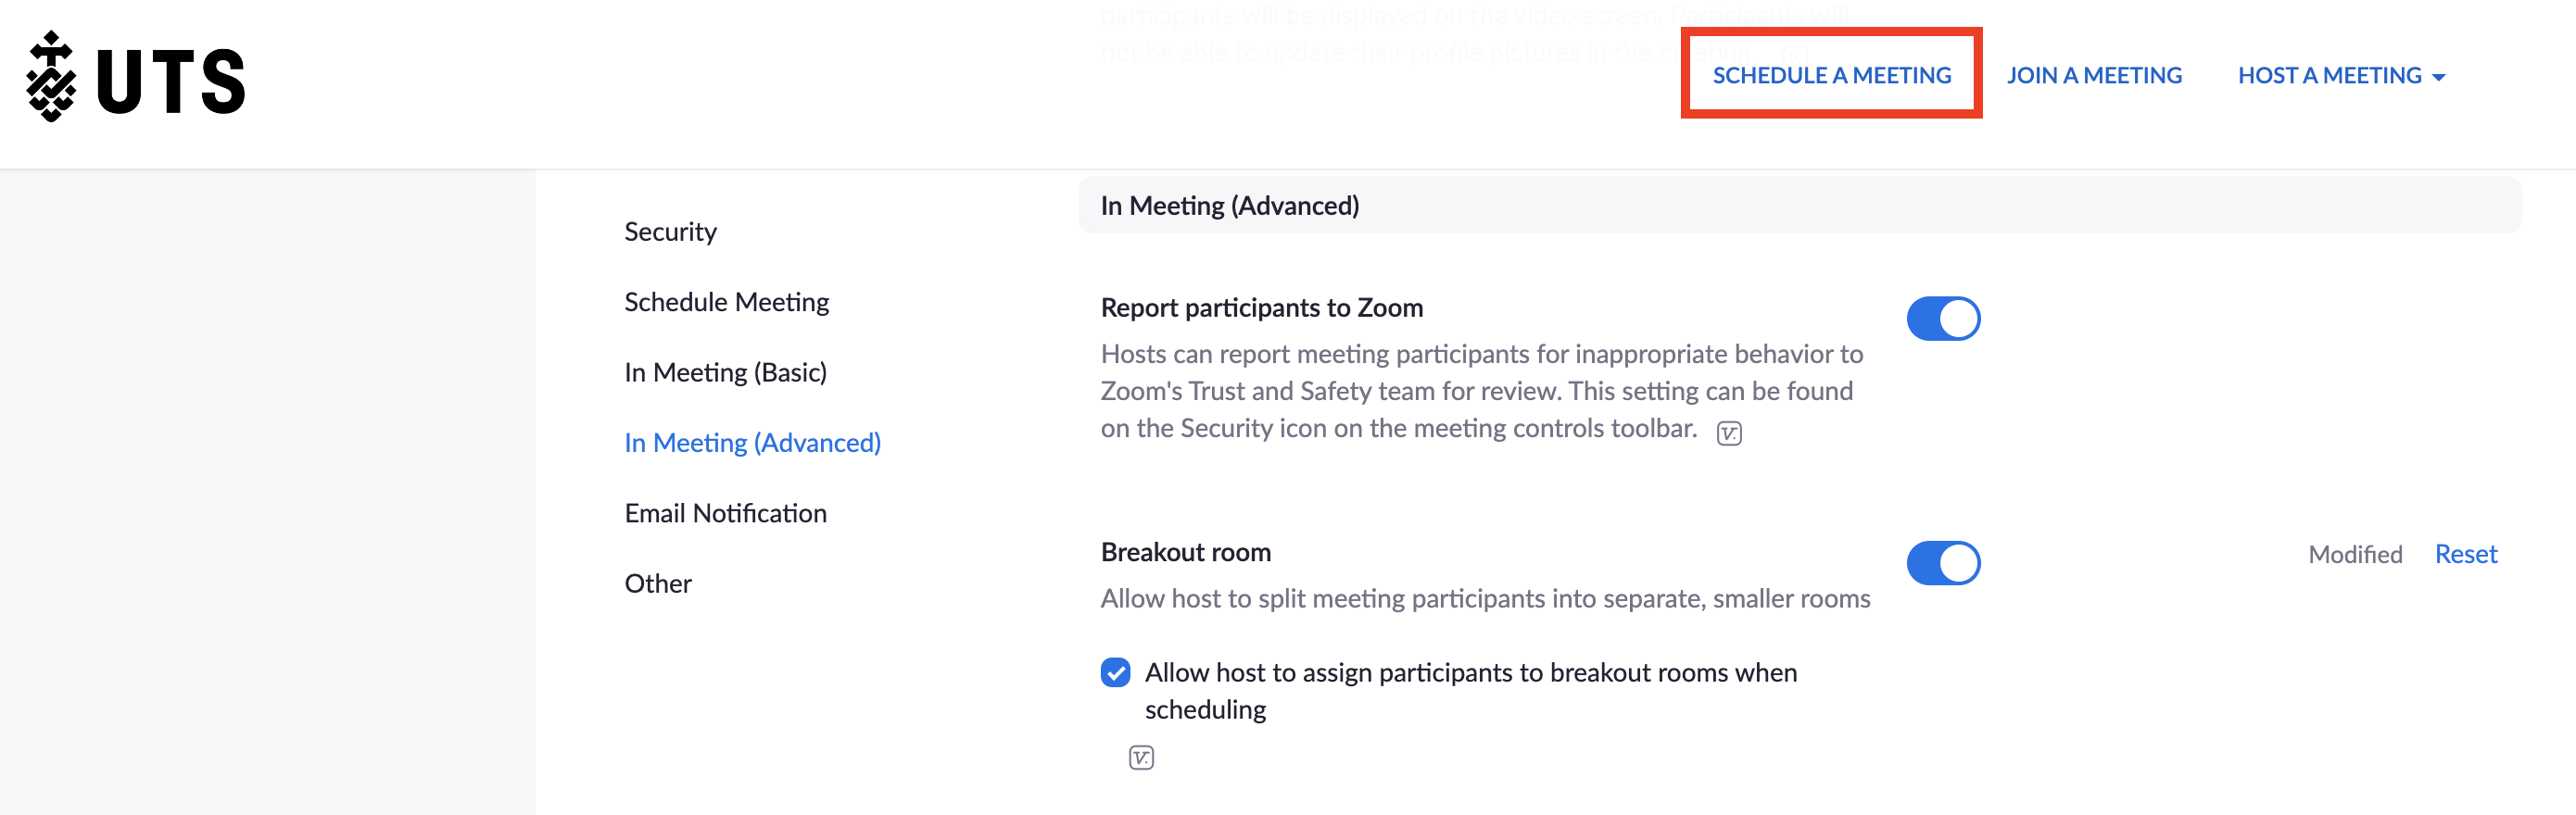 Screenshot of UTS Zoom portal with 'Schedule a Meeting' link highlighted